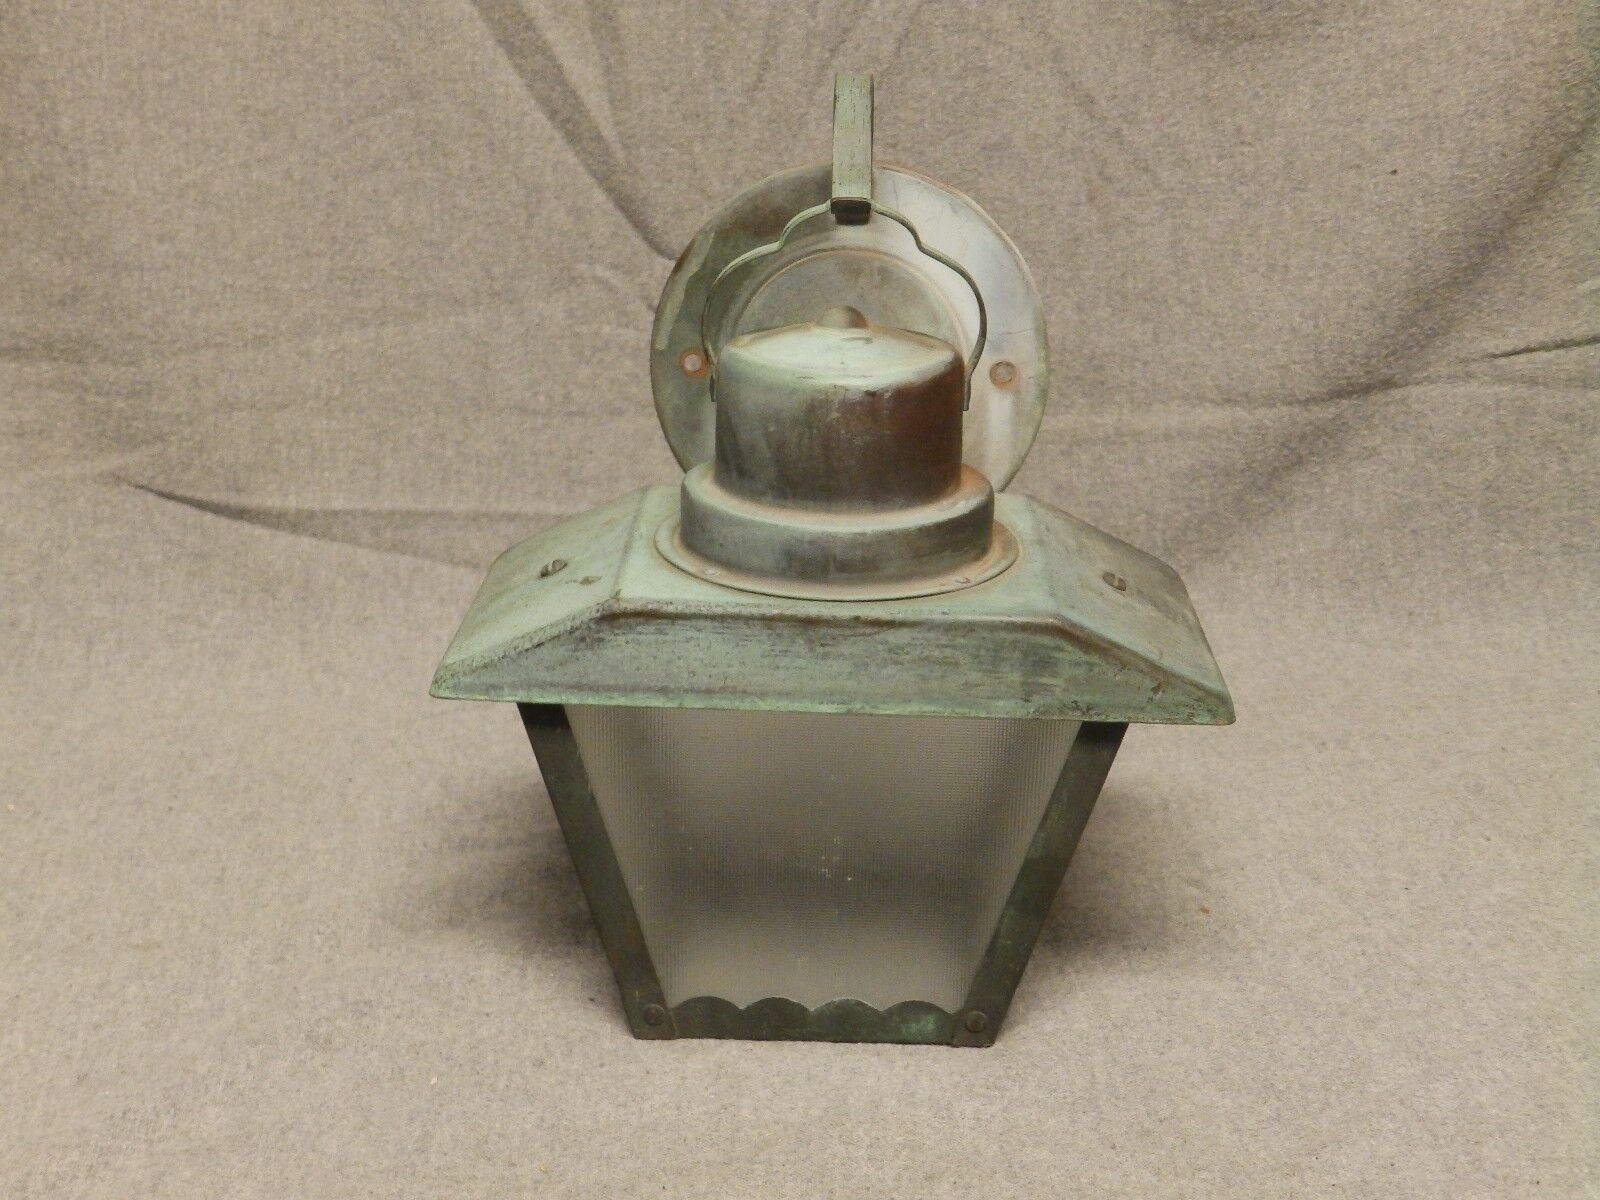 Vintage Copper Arts Crafts Porch Sconce Wall Light Fixture Old Outdoor 669-16